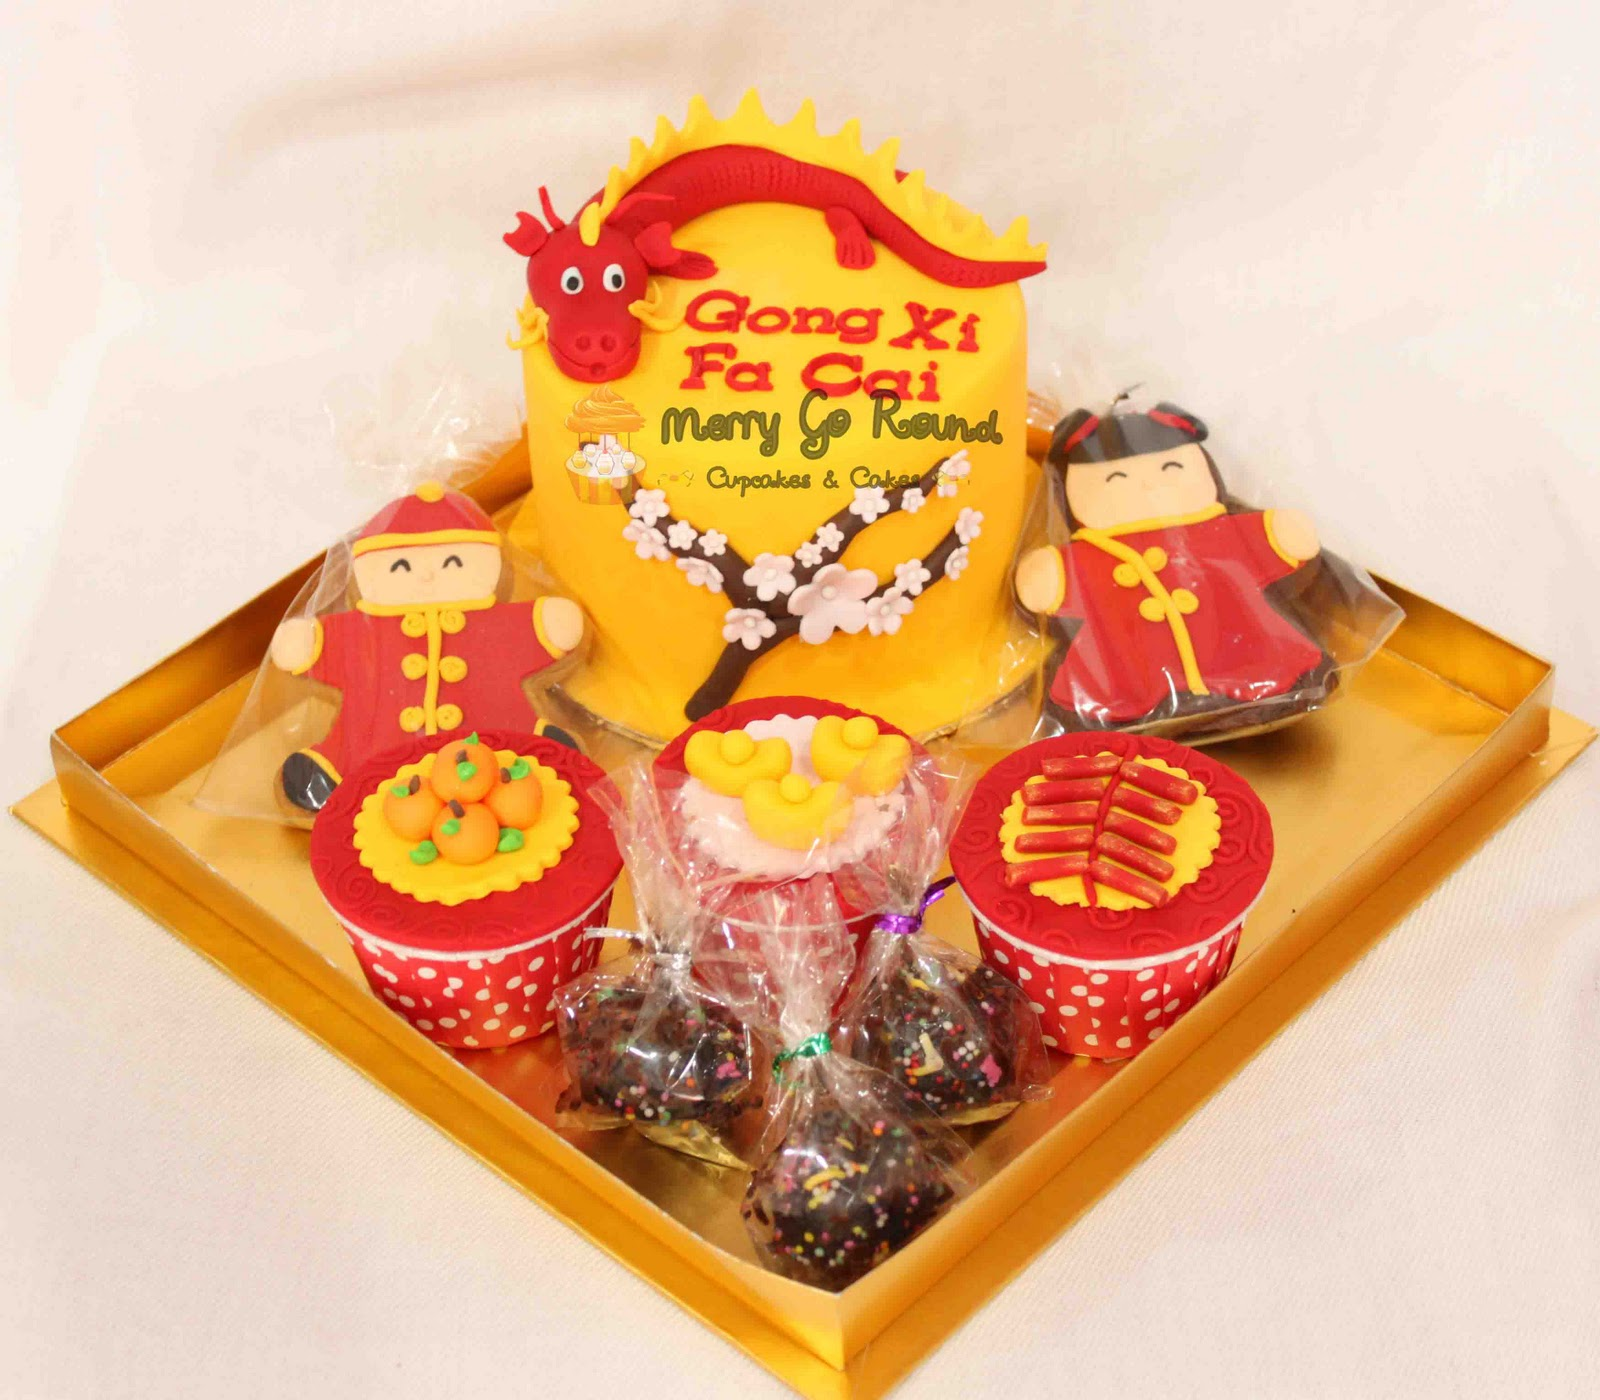 Merry Go Round - Cupcakes & Cakes: Chinese New Year Gift Box!